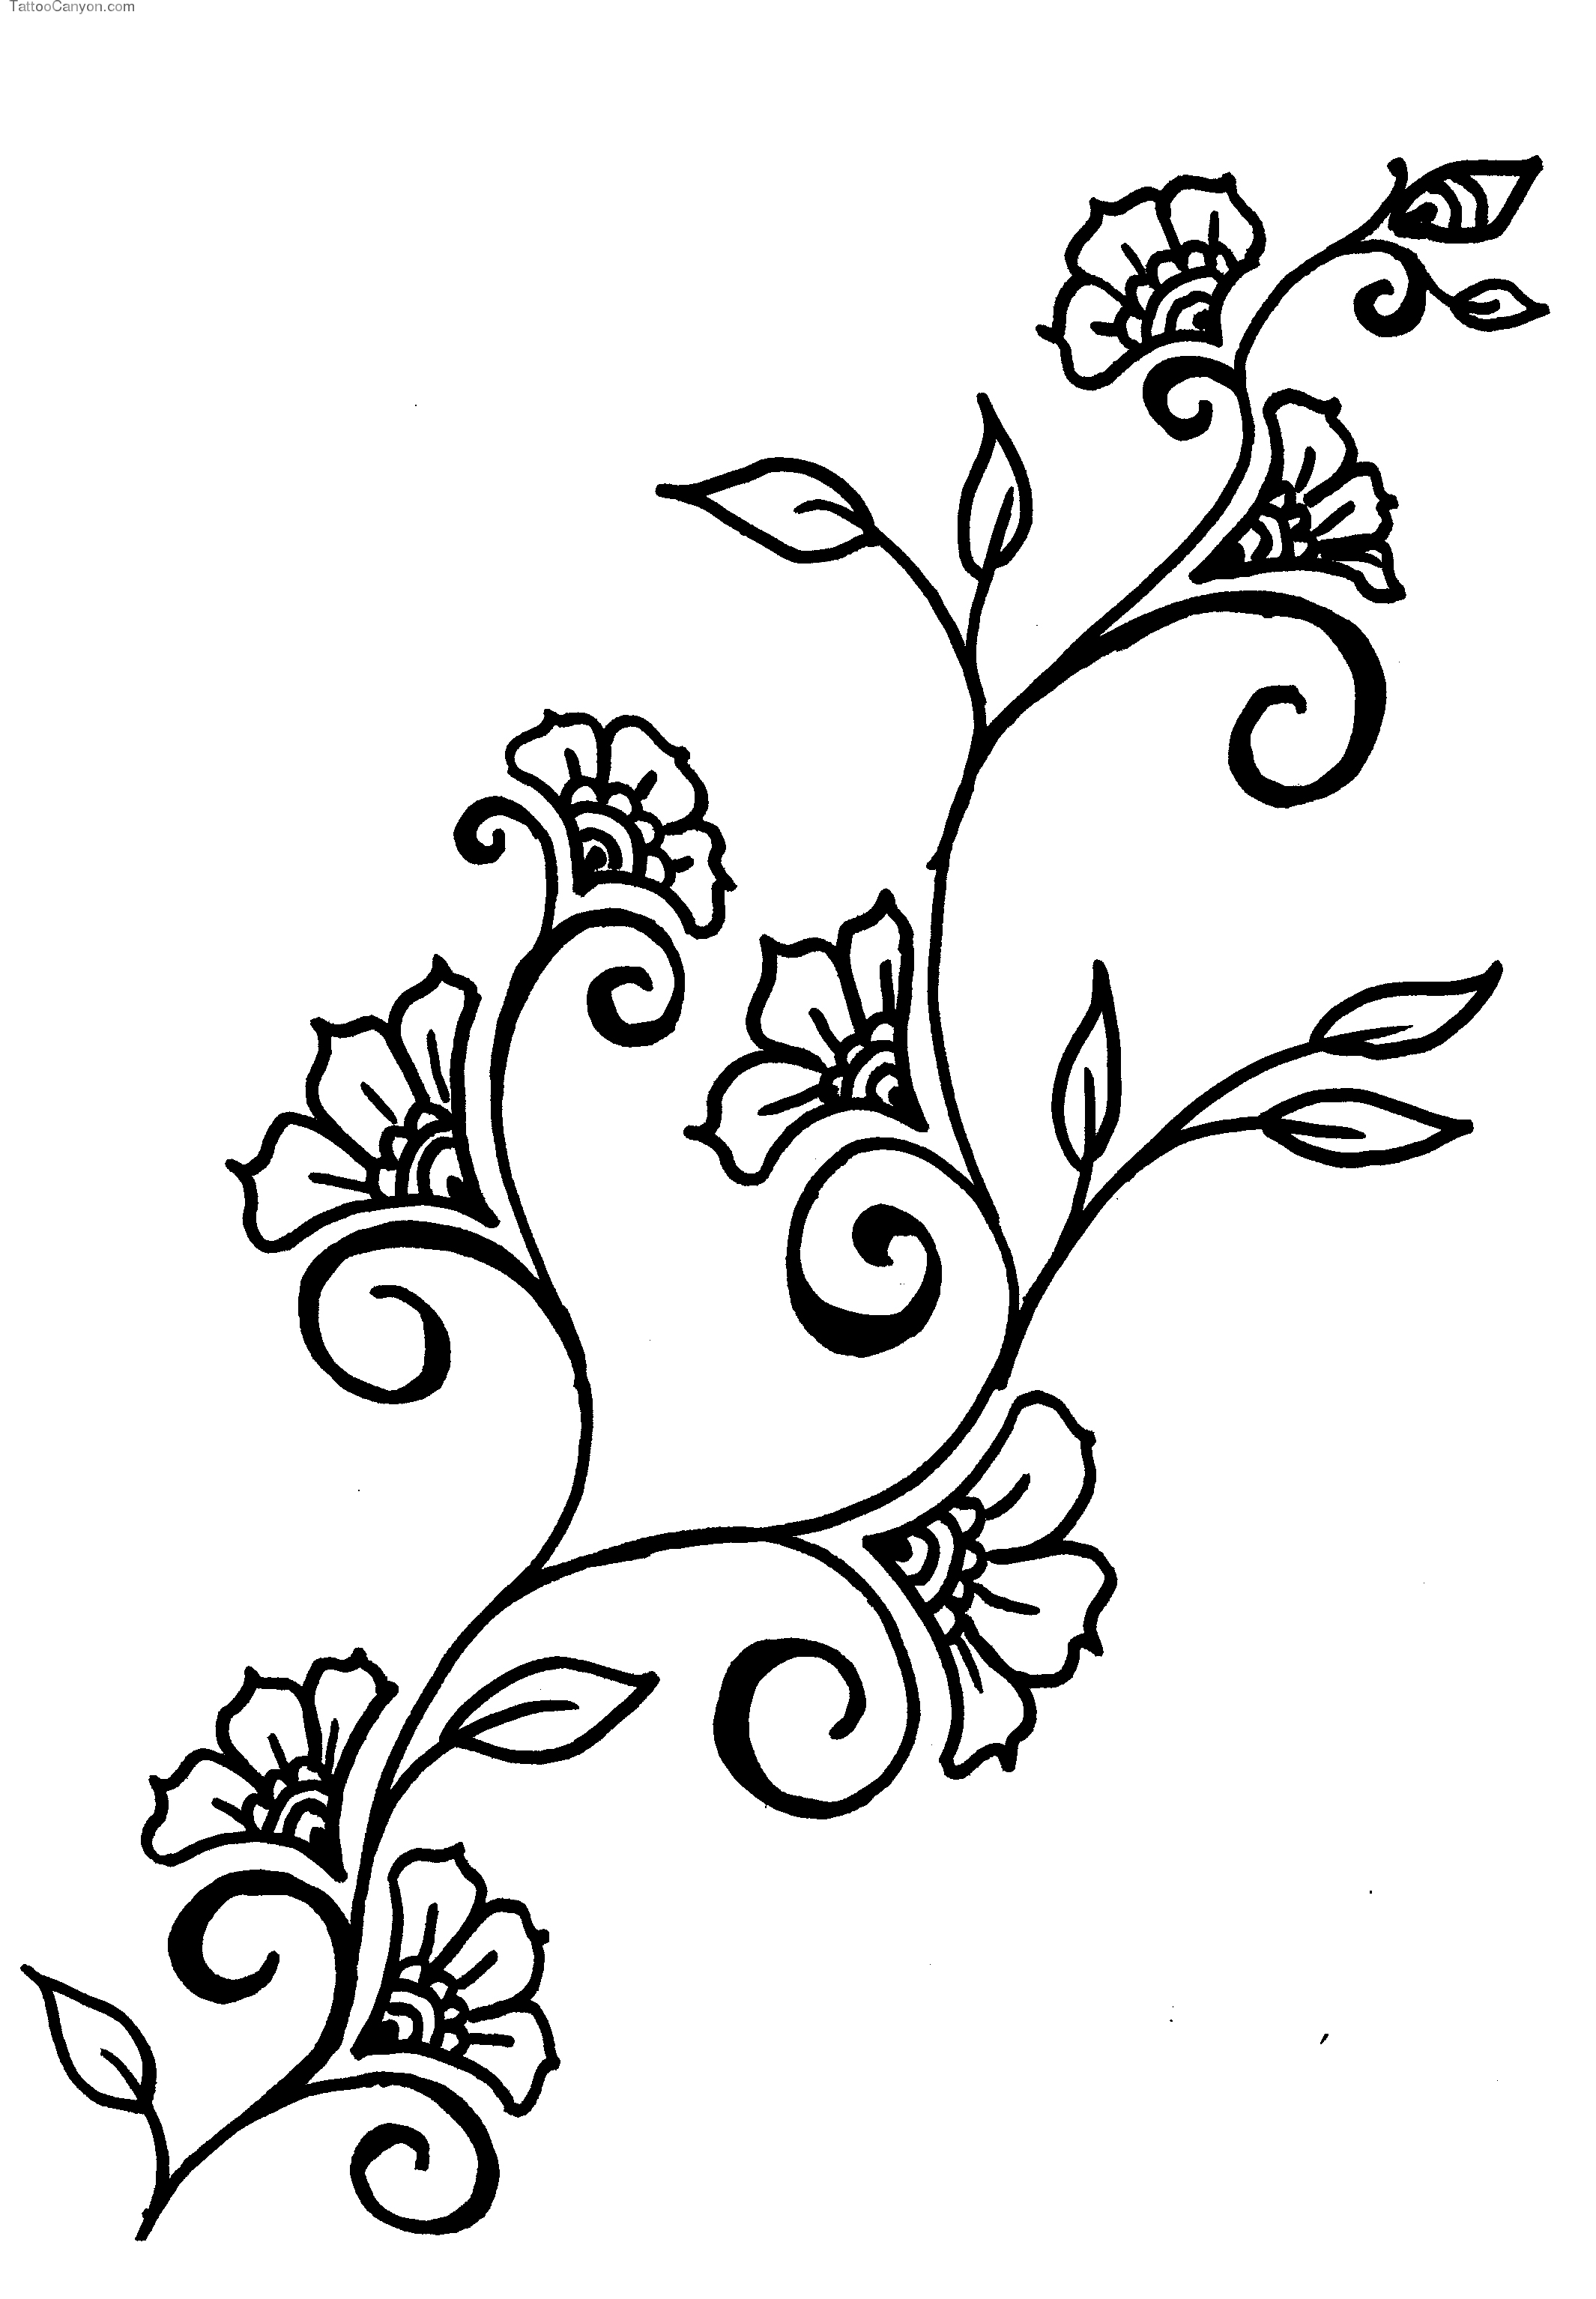 Flower Vine Line Drawing : Vines flowers design drawings clipart best